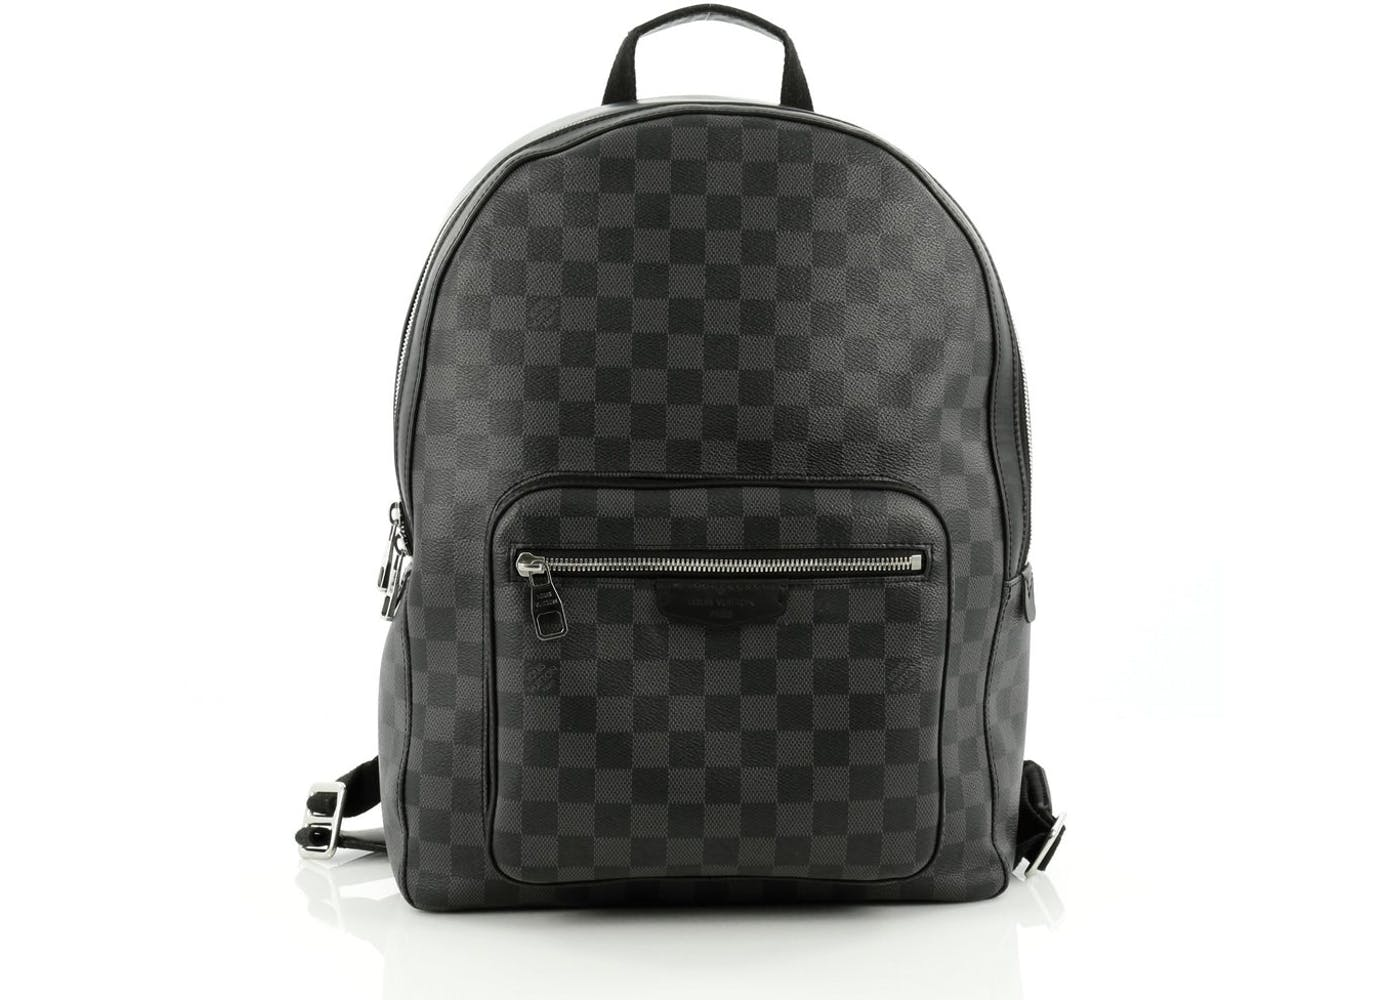 909ceb6b84bc Back to School With Style  Louis Vuitton and Gucci Backpacks at ...